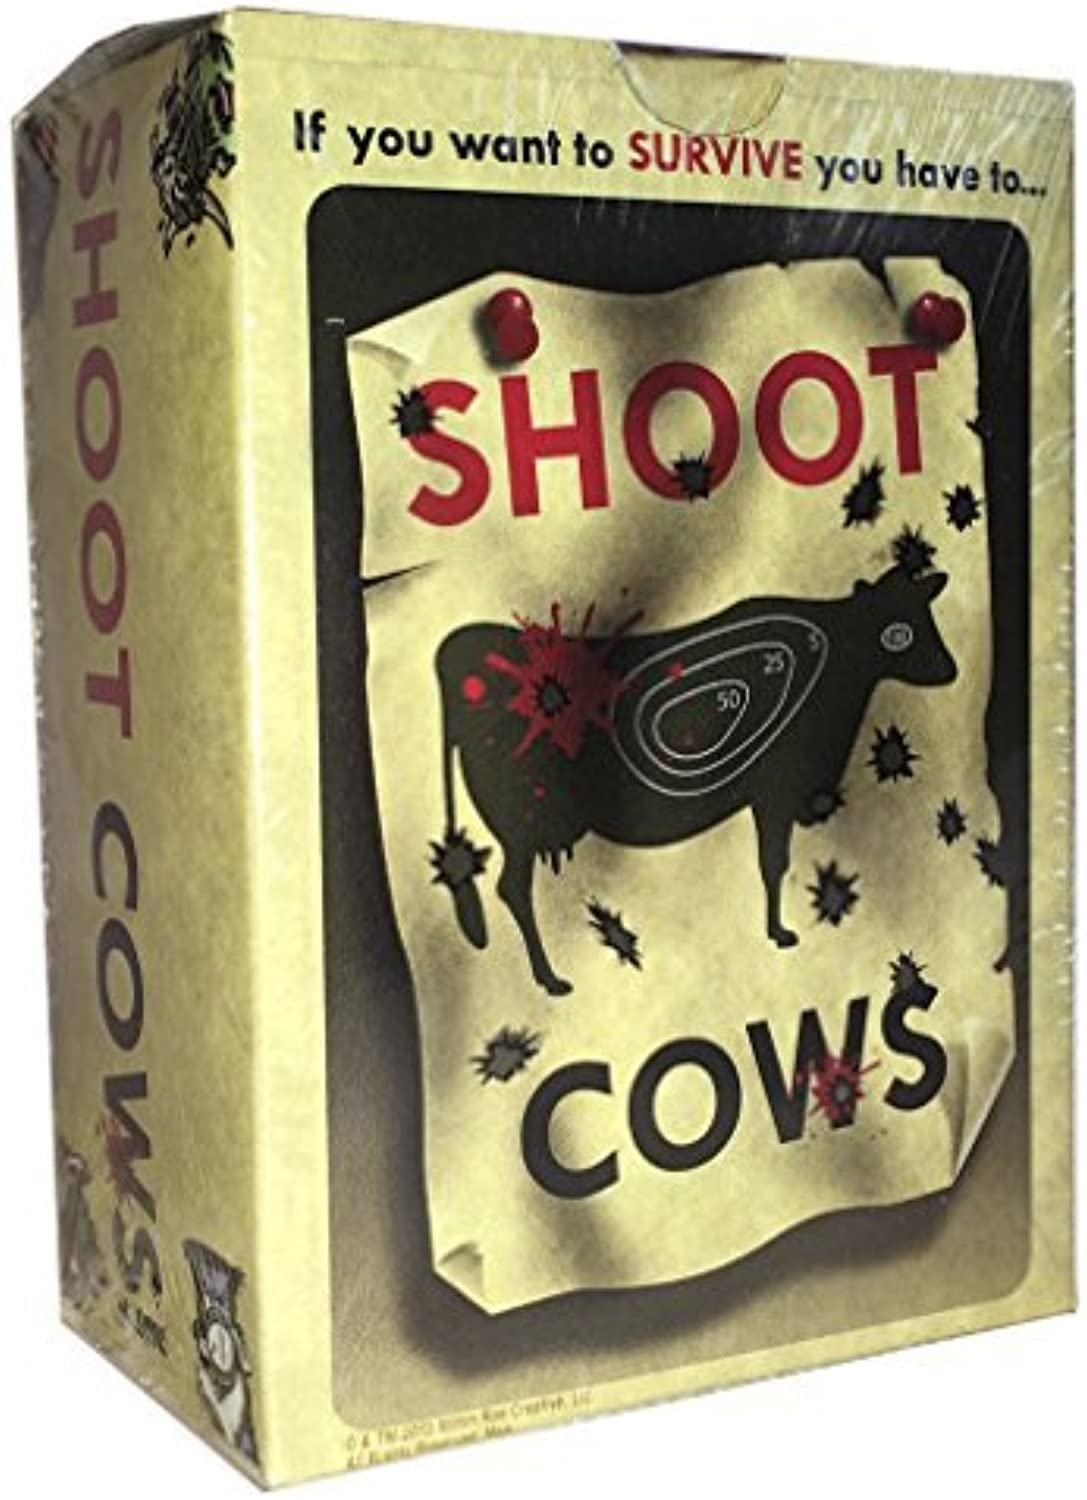 SHOOT COWS by Milton Industries